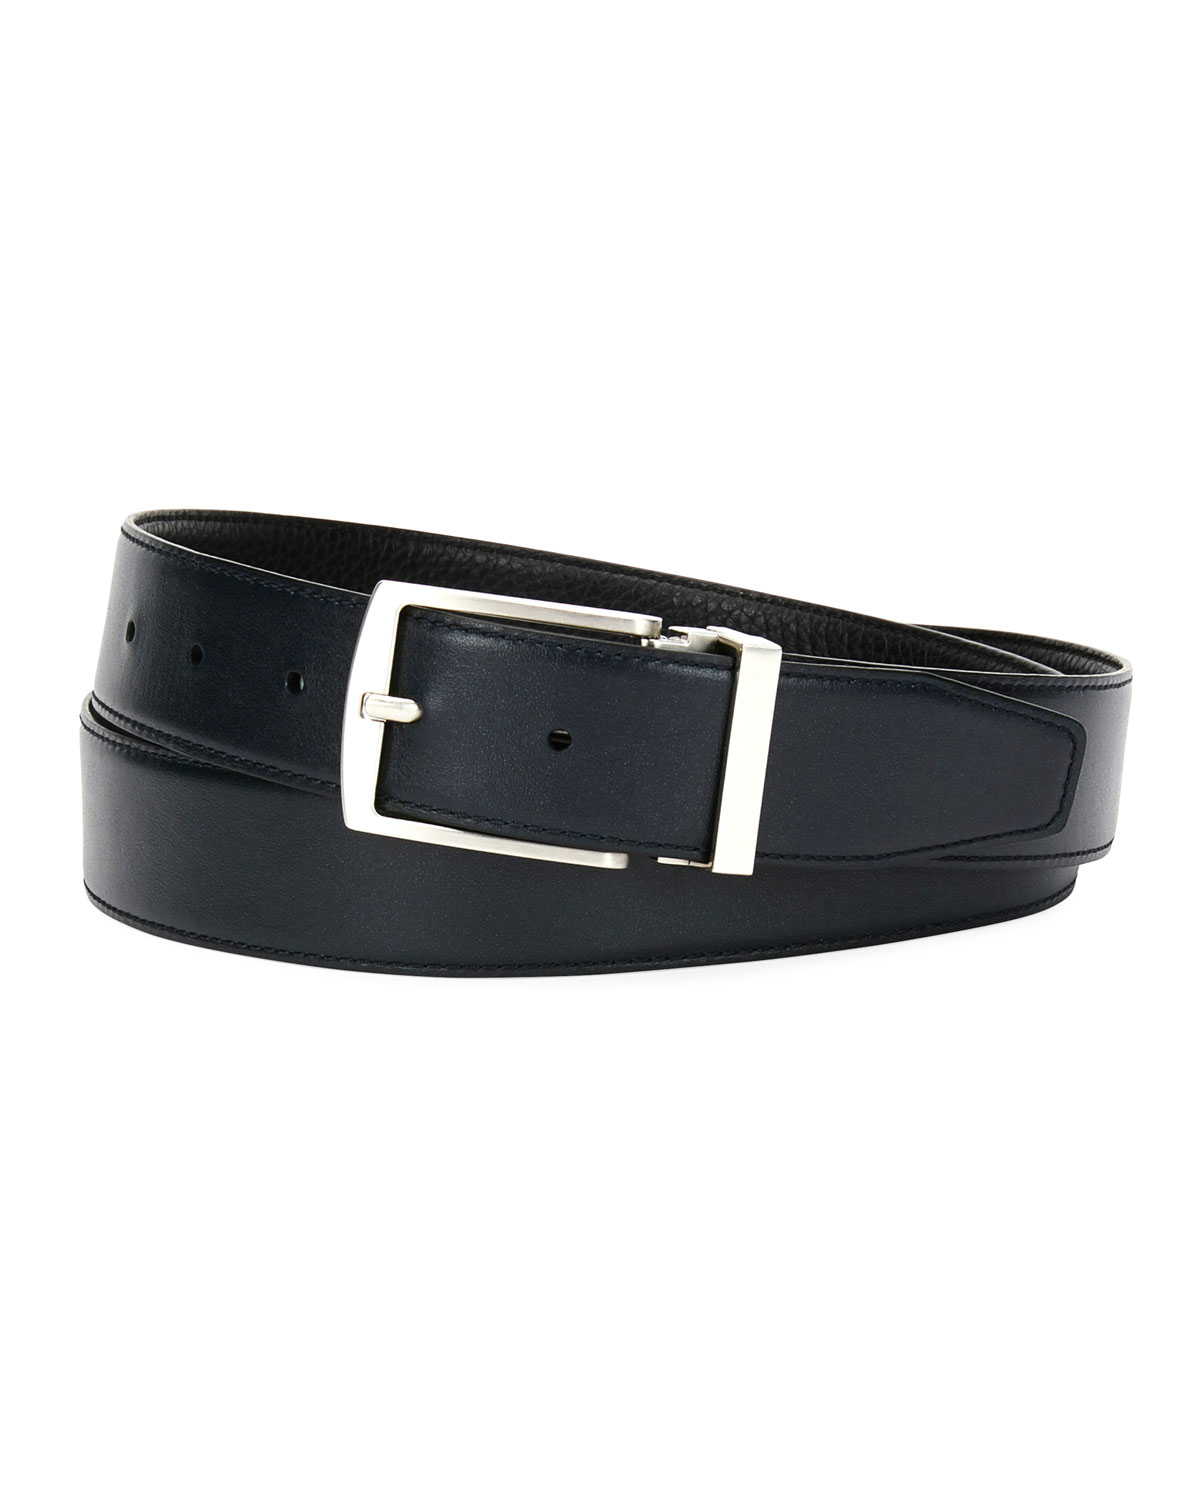 Traditional Dual Textured Leather Belt by Giorgio Armani